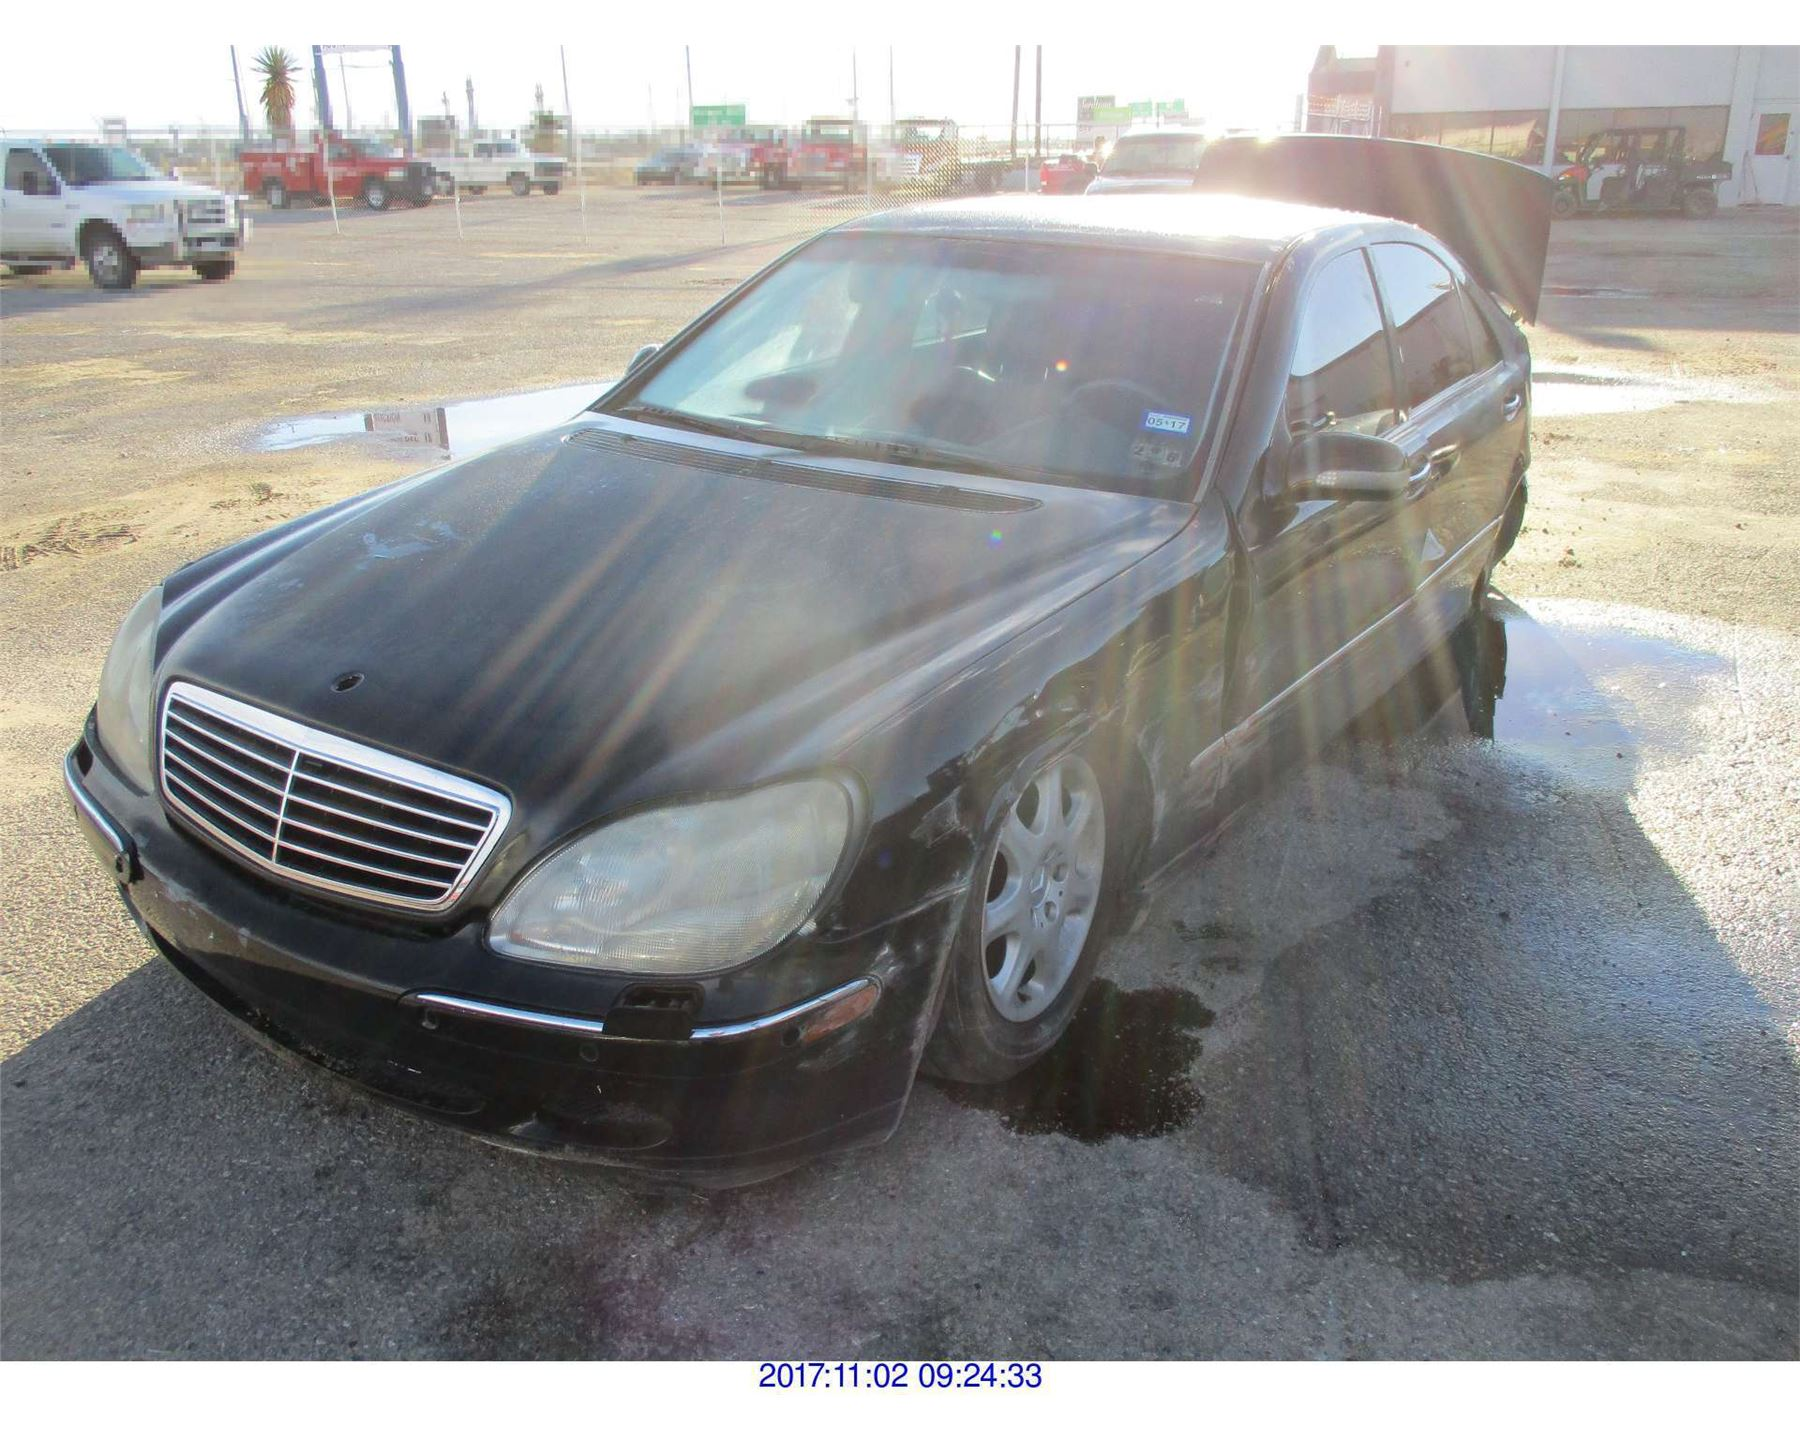 2000 mercedes benz s500 parts only rod robertson for 2000 mercedes benz s500 parts